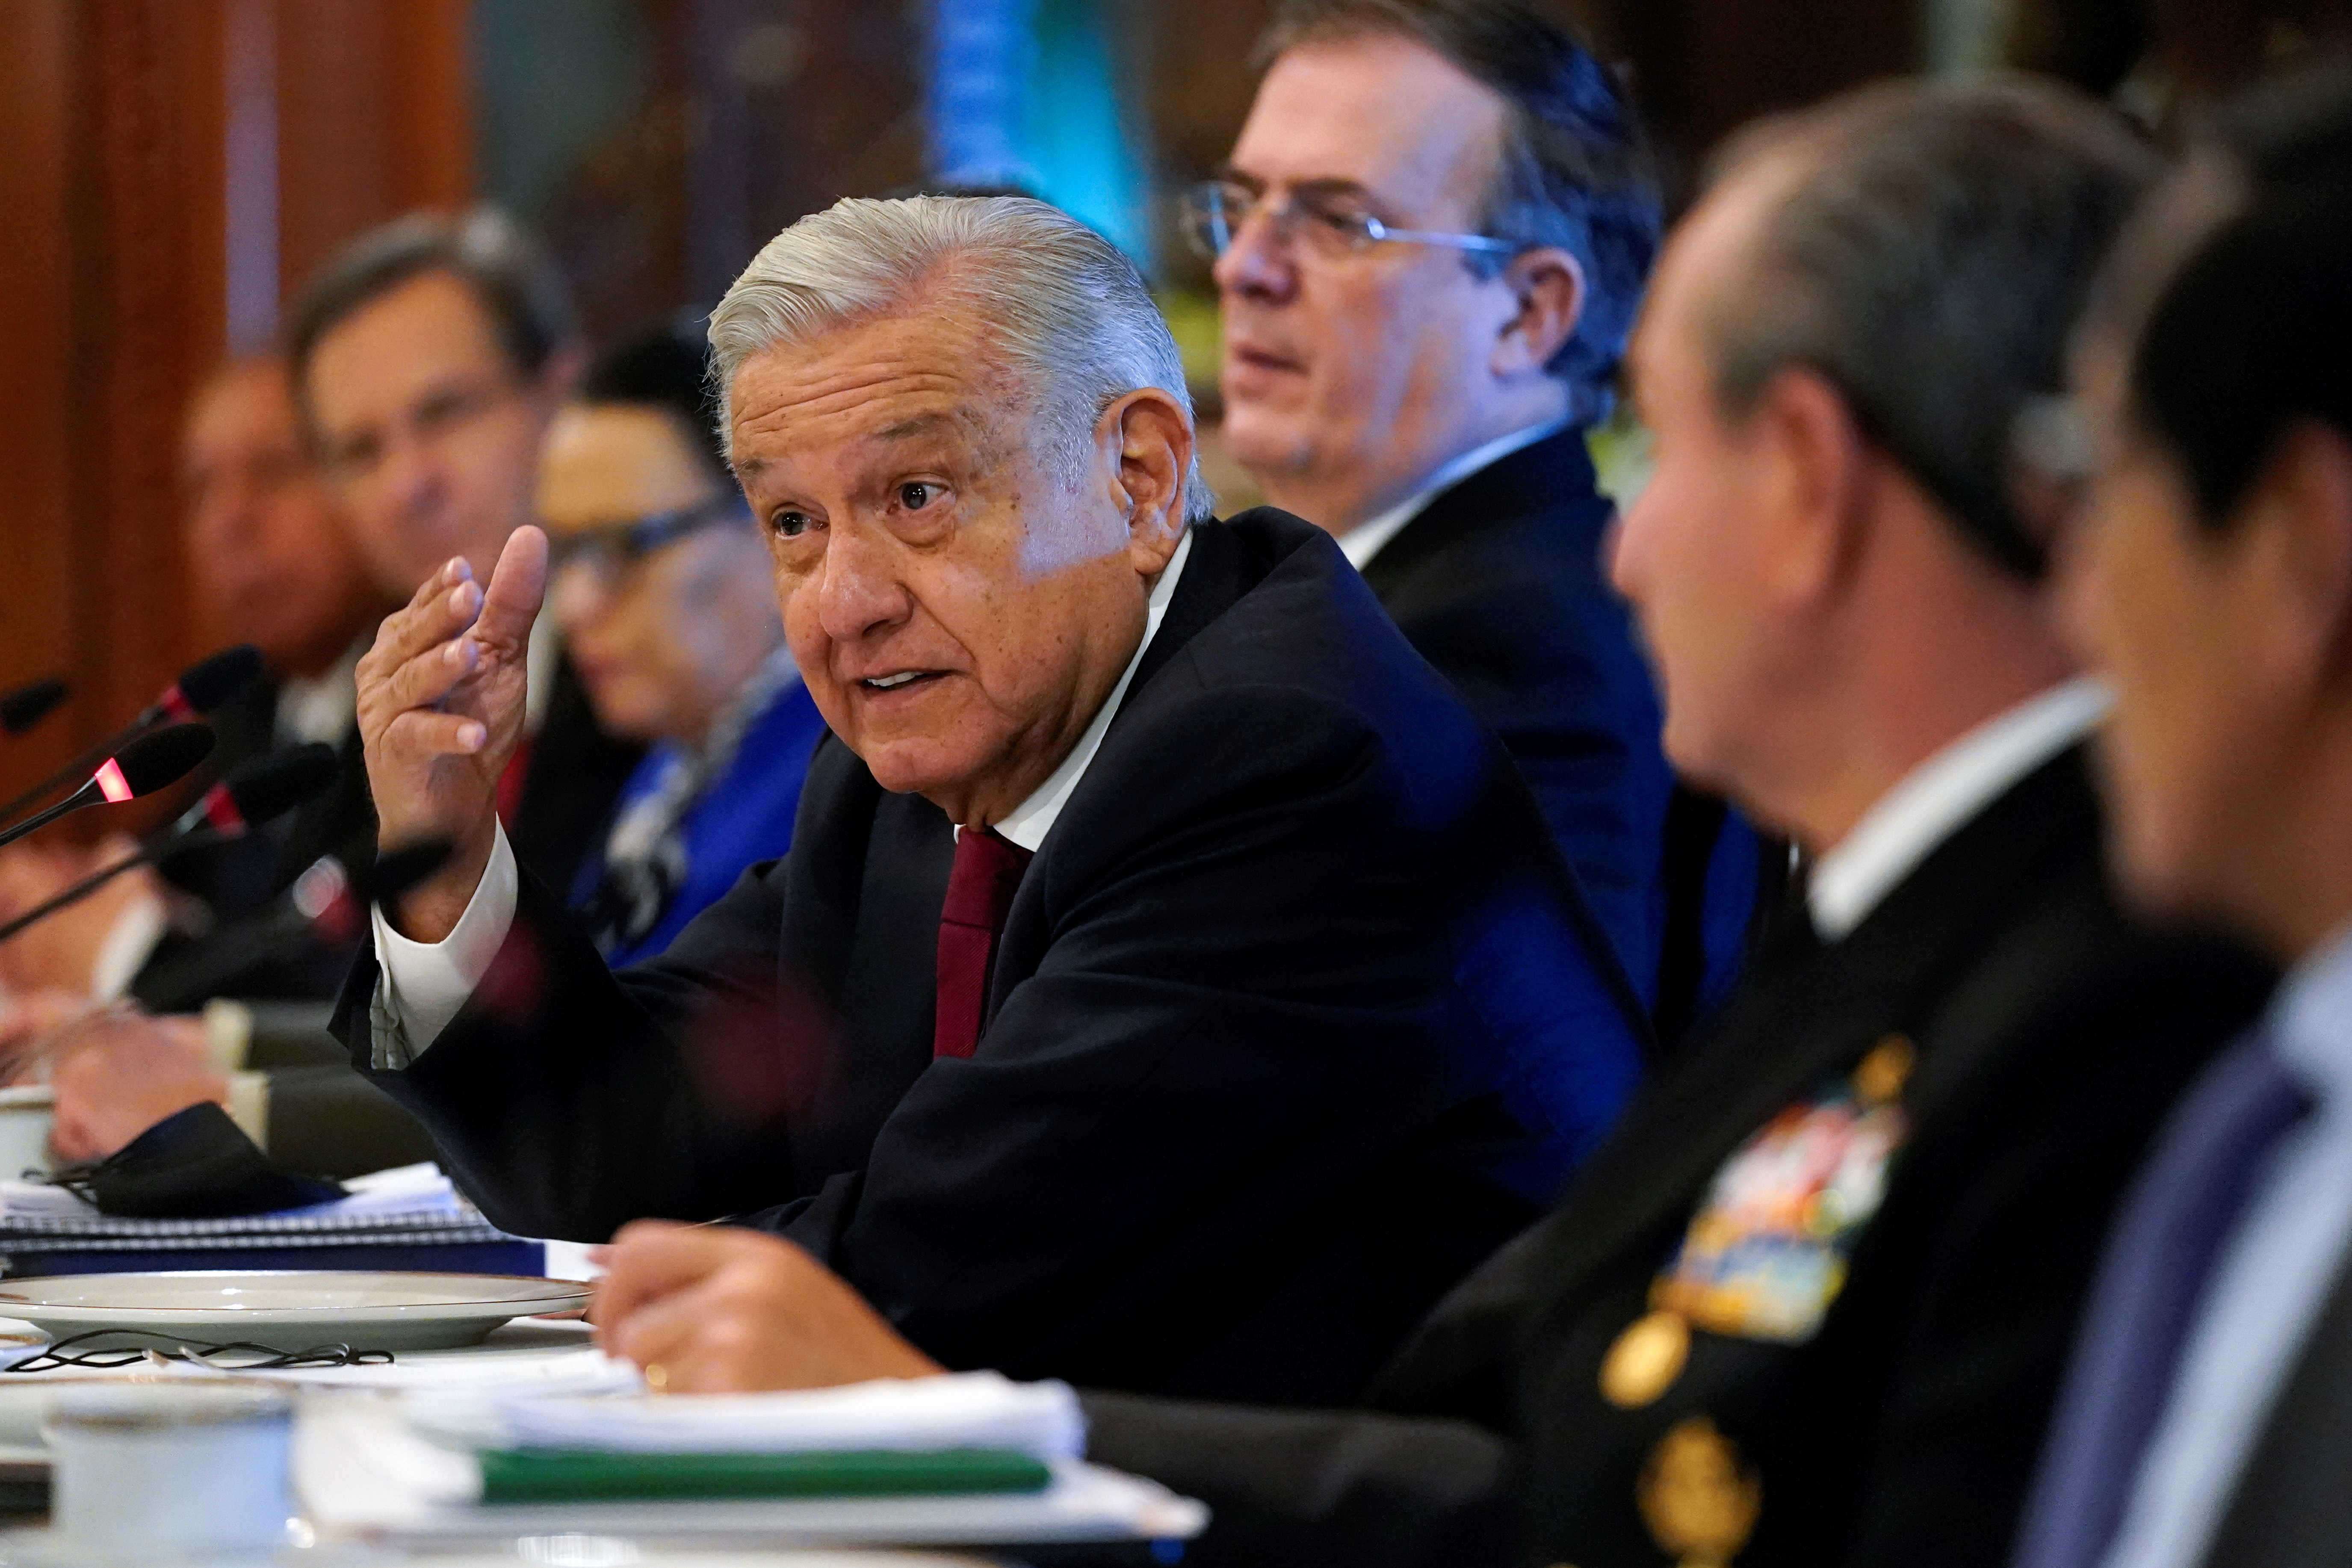 Mexico's President Andres Manuel Lopez Obrador speaks during a working breakfast with U.S. Secretary of State Antony Blinken at the National Palace in Mexico City, Mexico, October 8, 2021. Patrick Semansky/Pool via REUTERS